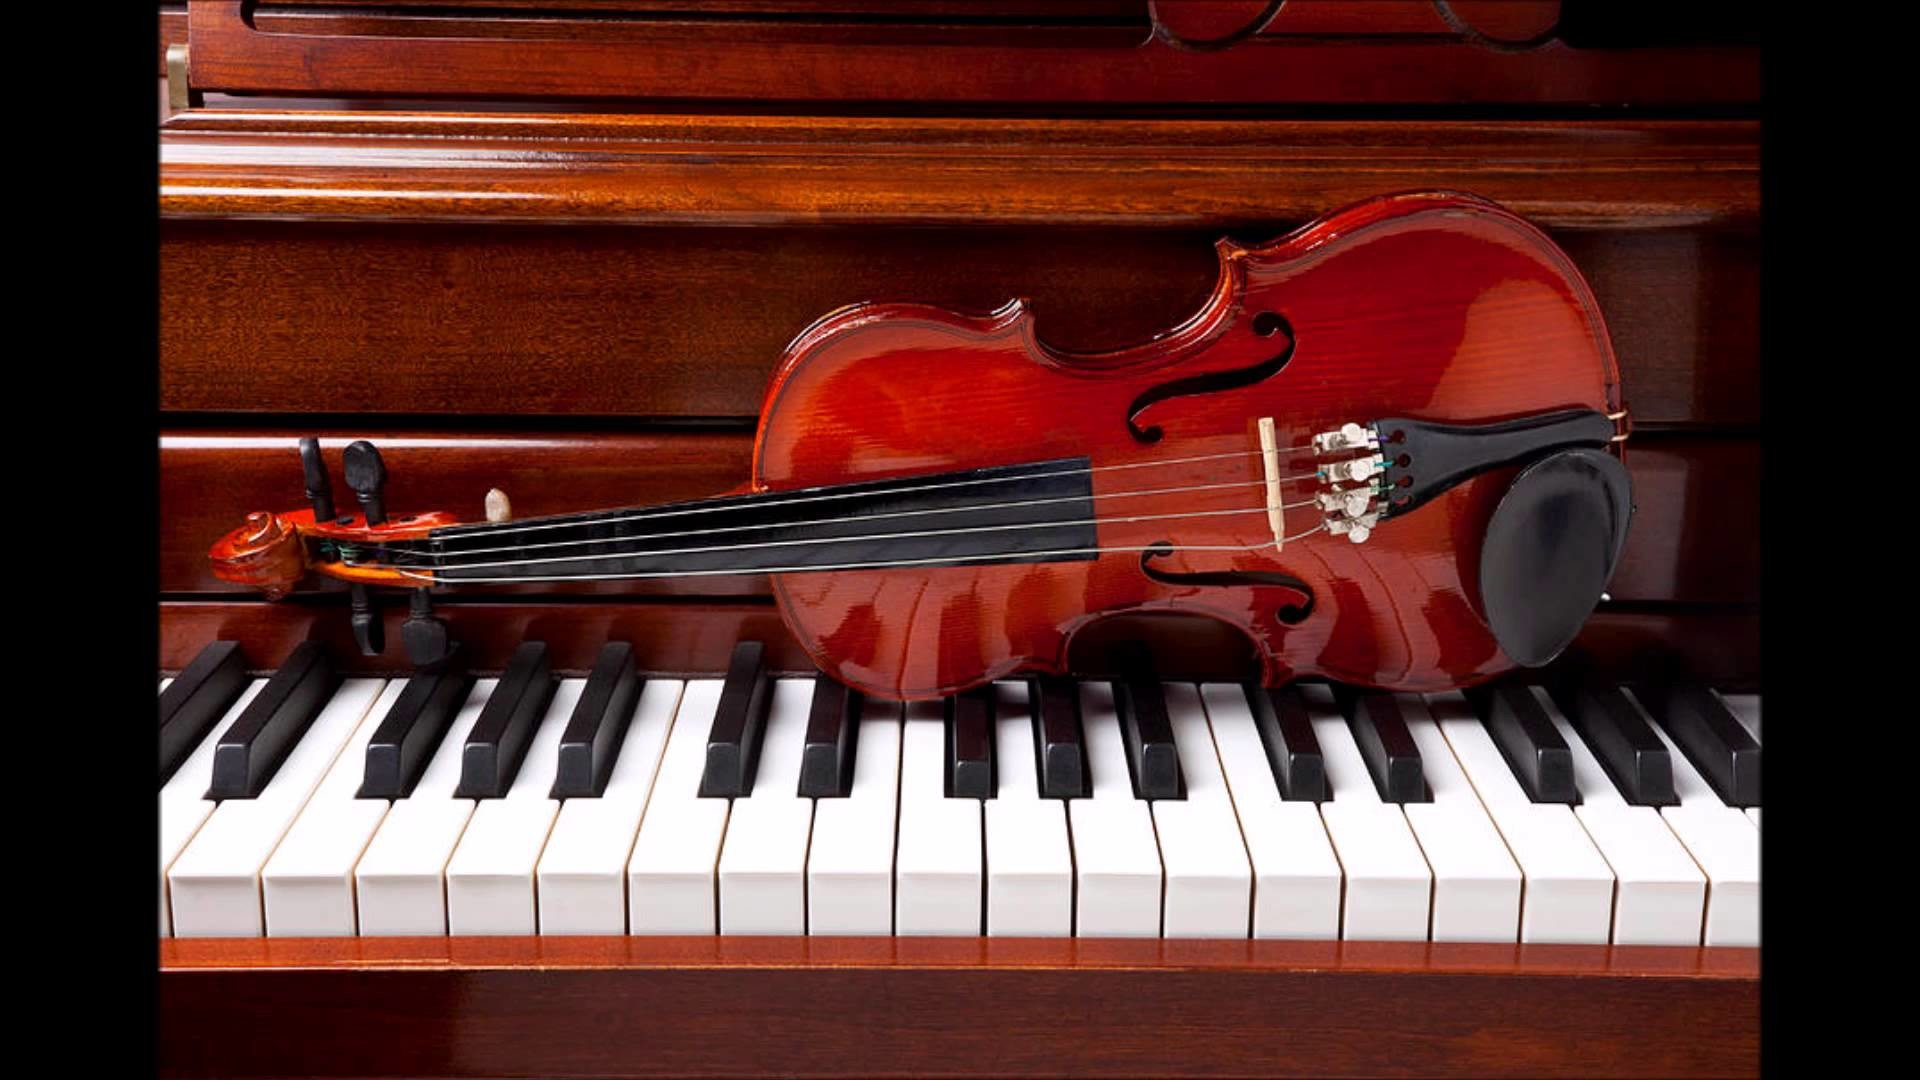 1920x1080 Download Violin Piano Wallpaper Widescreen 10h  px 16238 KB